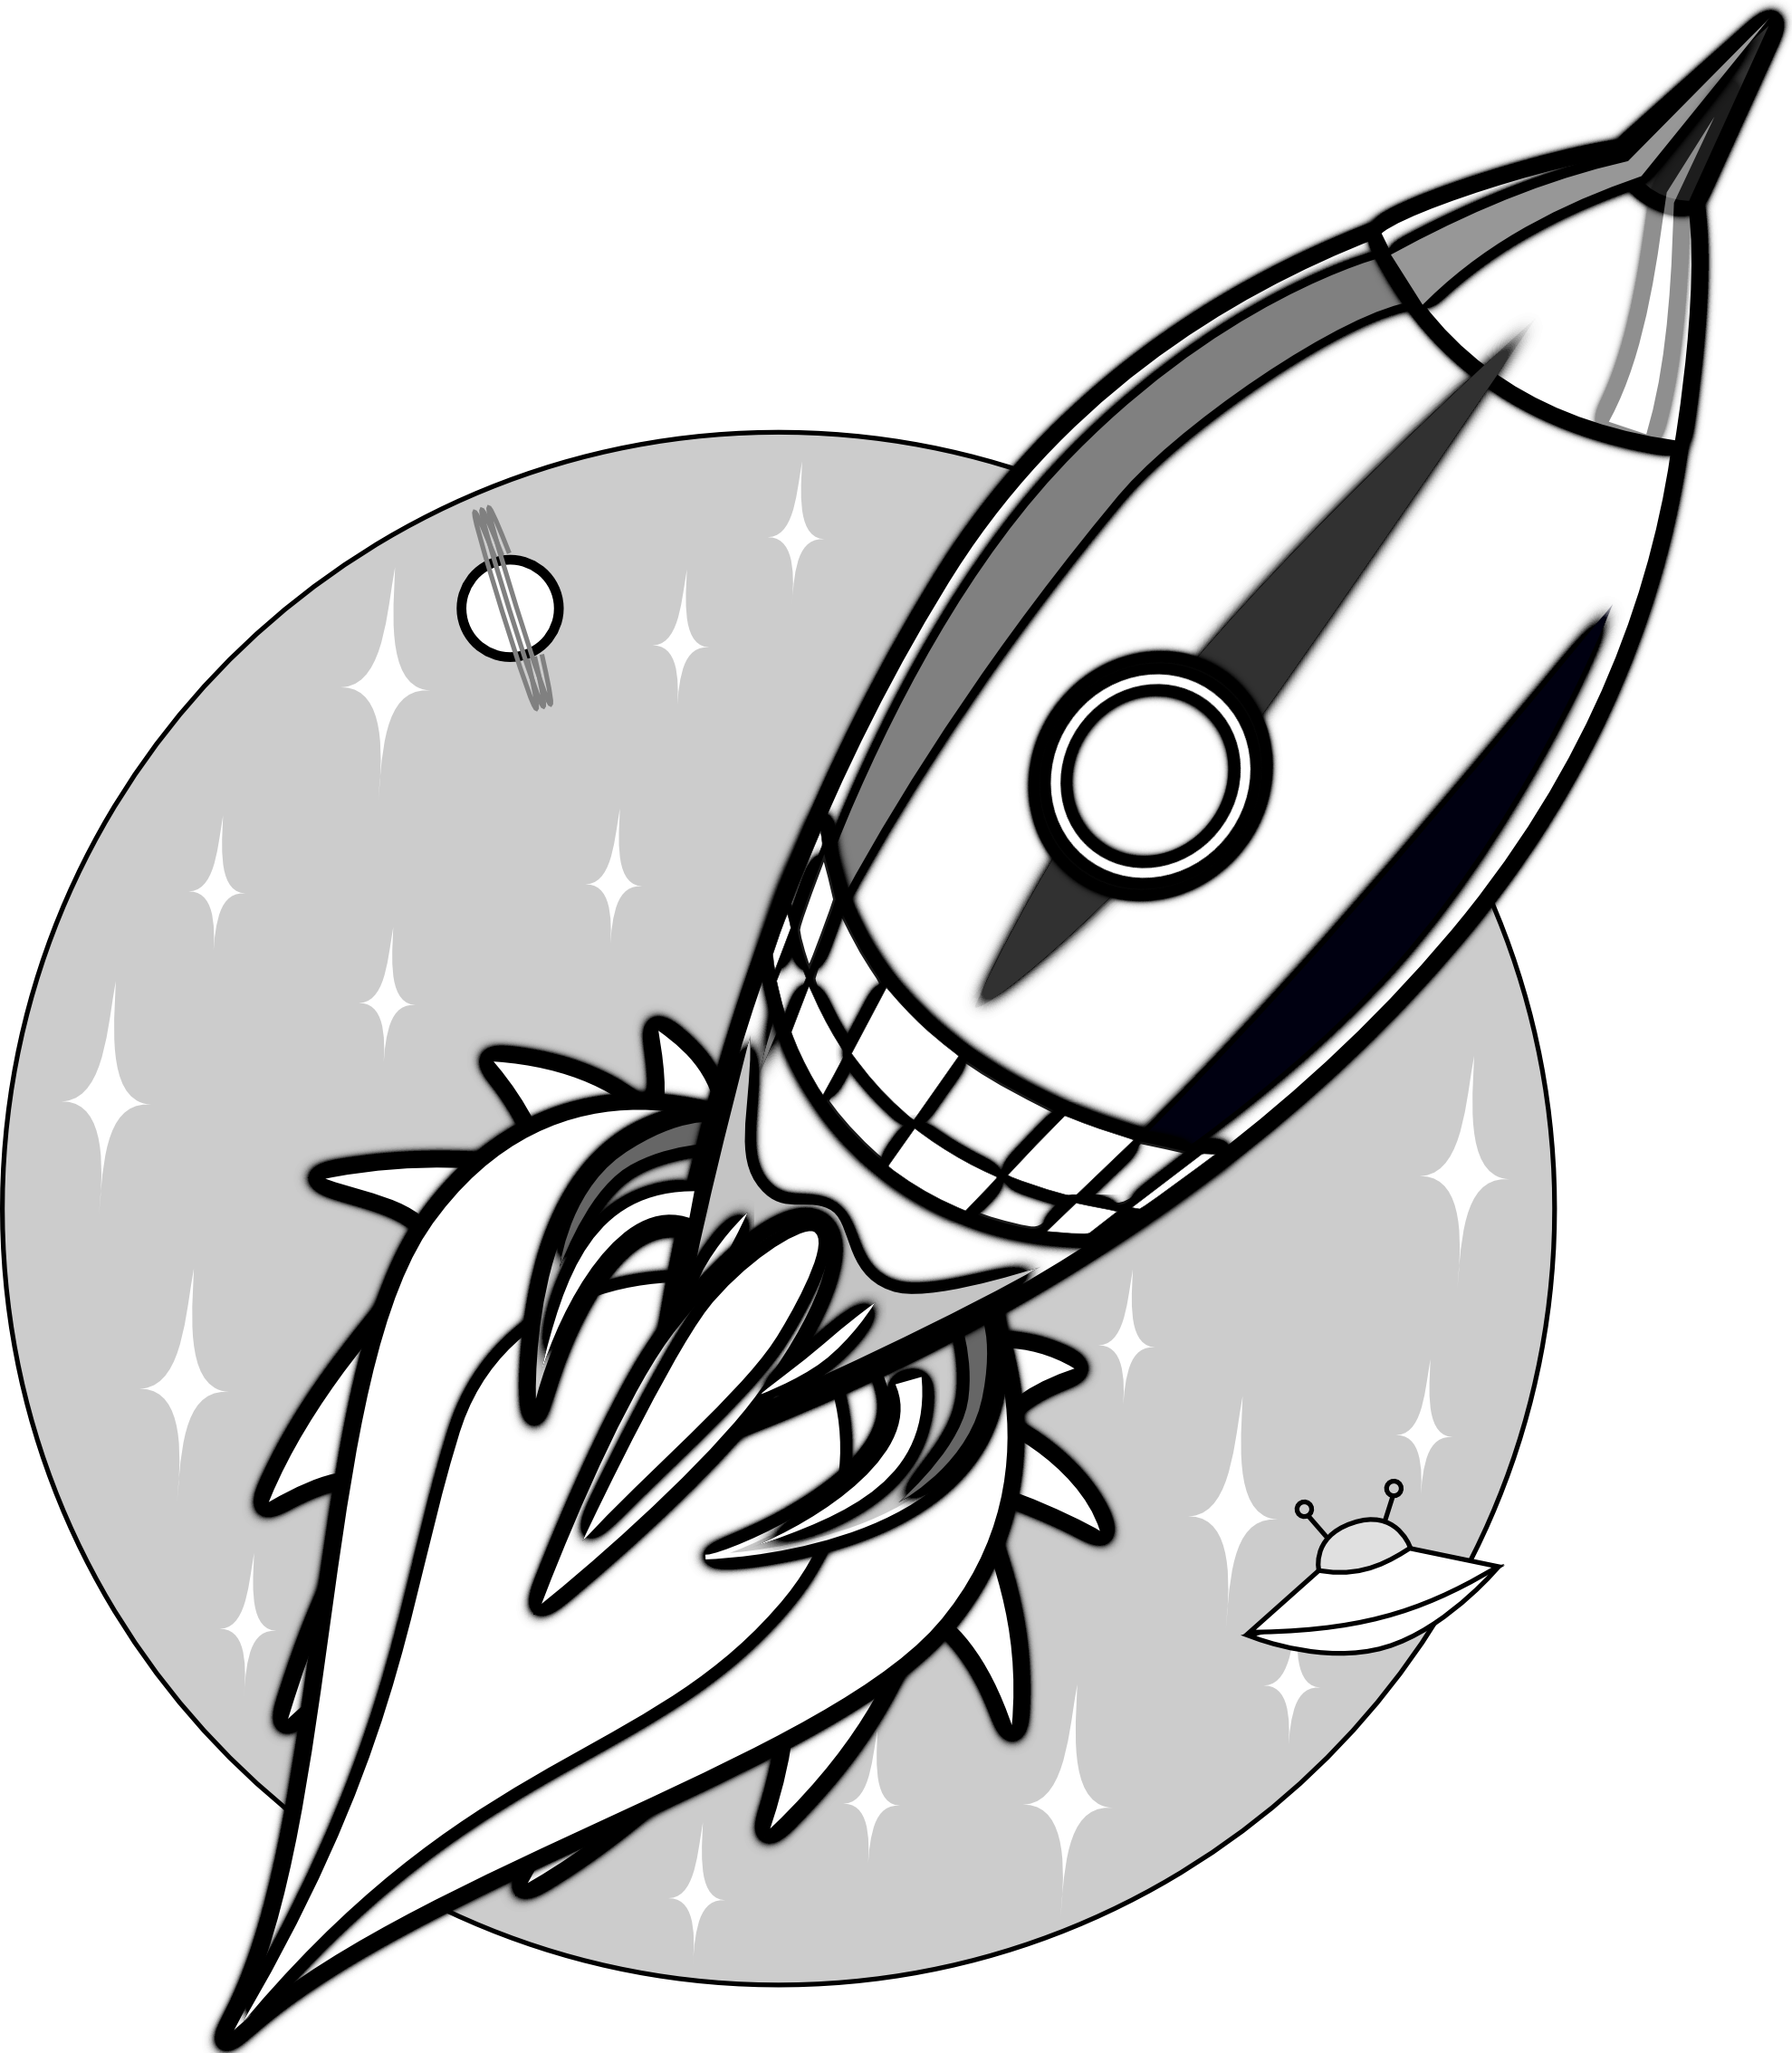 clipart freeuse library Images for rocket clip. Rocketship clipart black and white